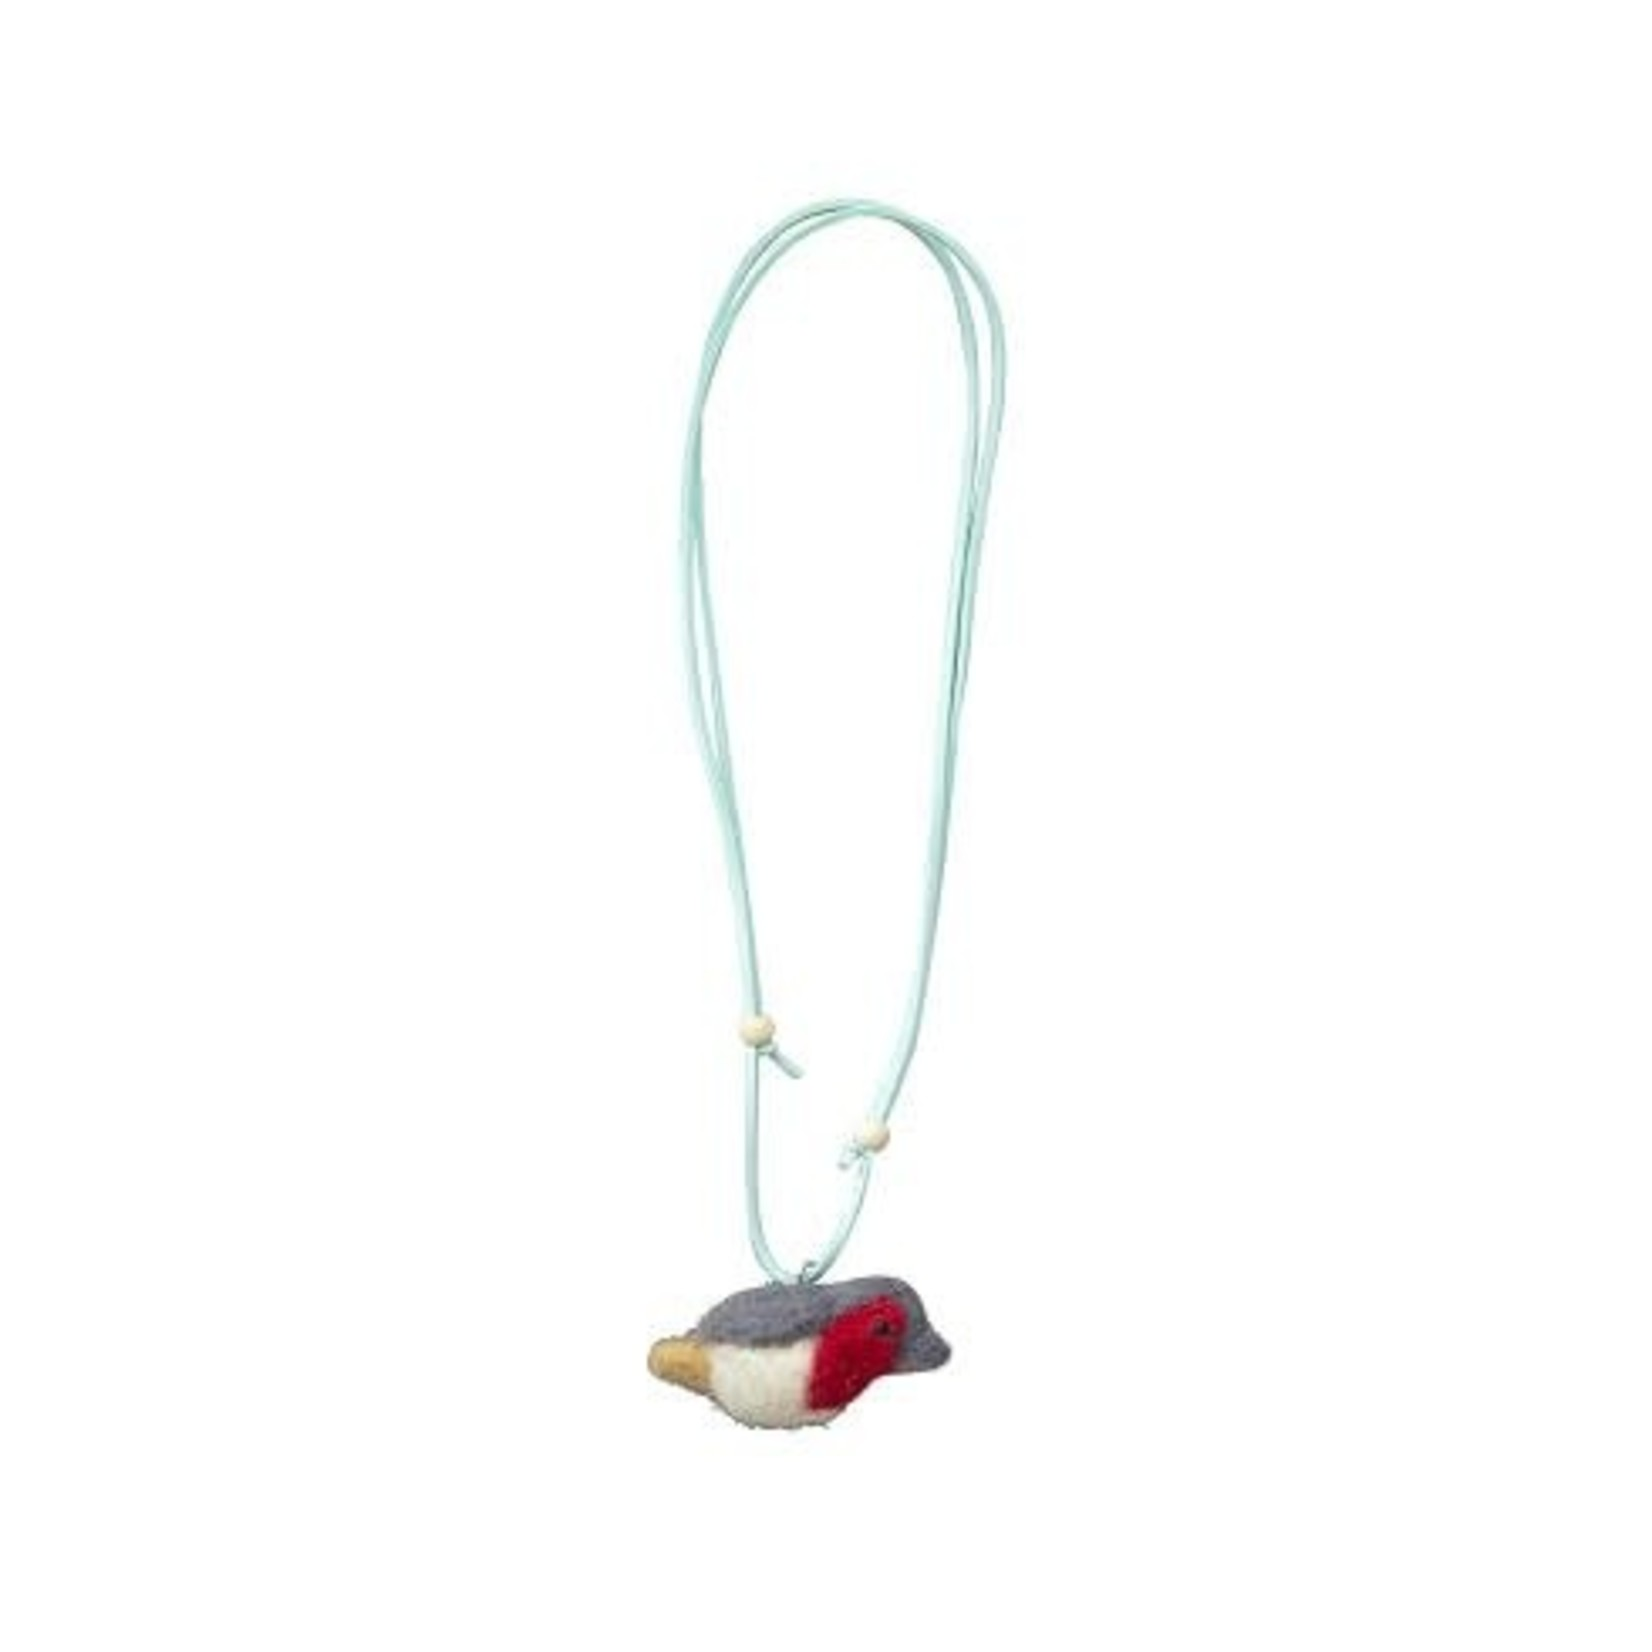 GLOBAL AFFAIRS GLOBAL AFFAIRS necklace robin